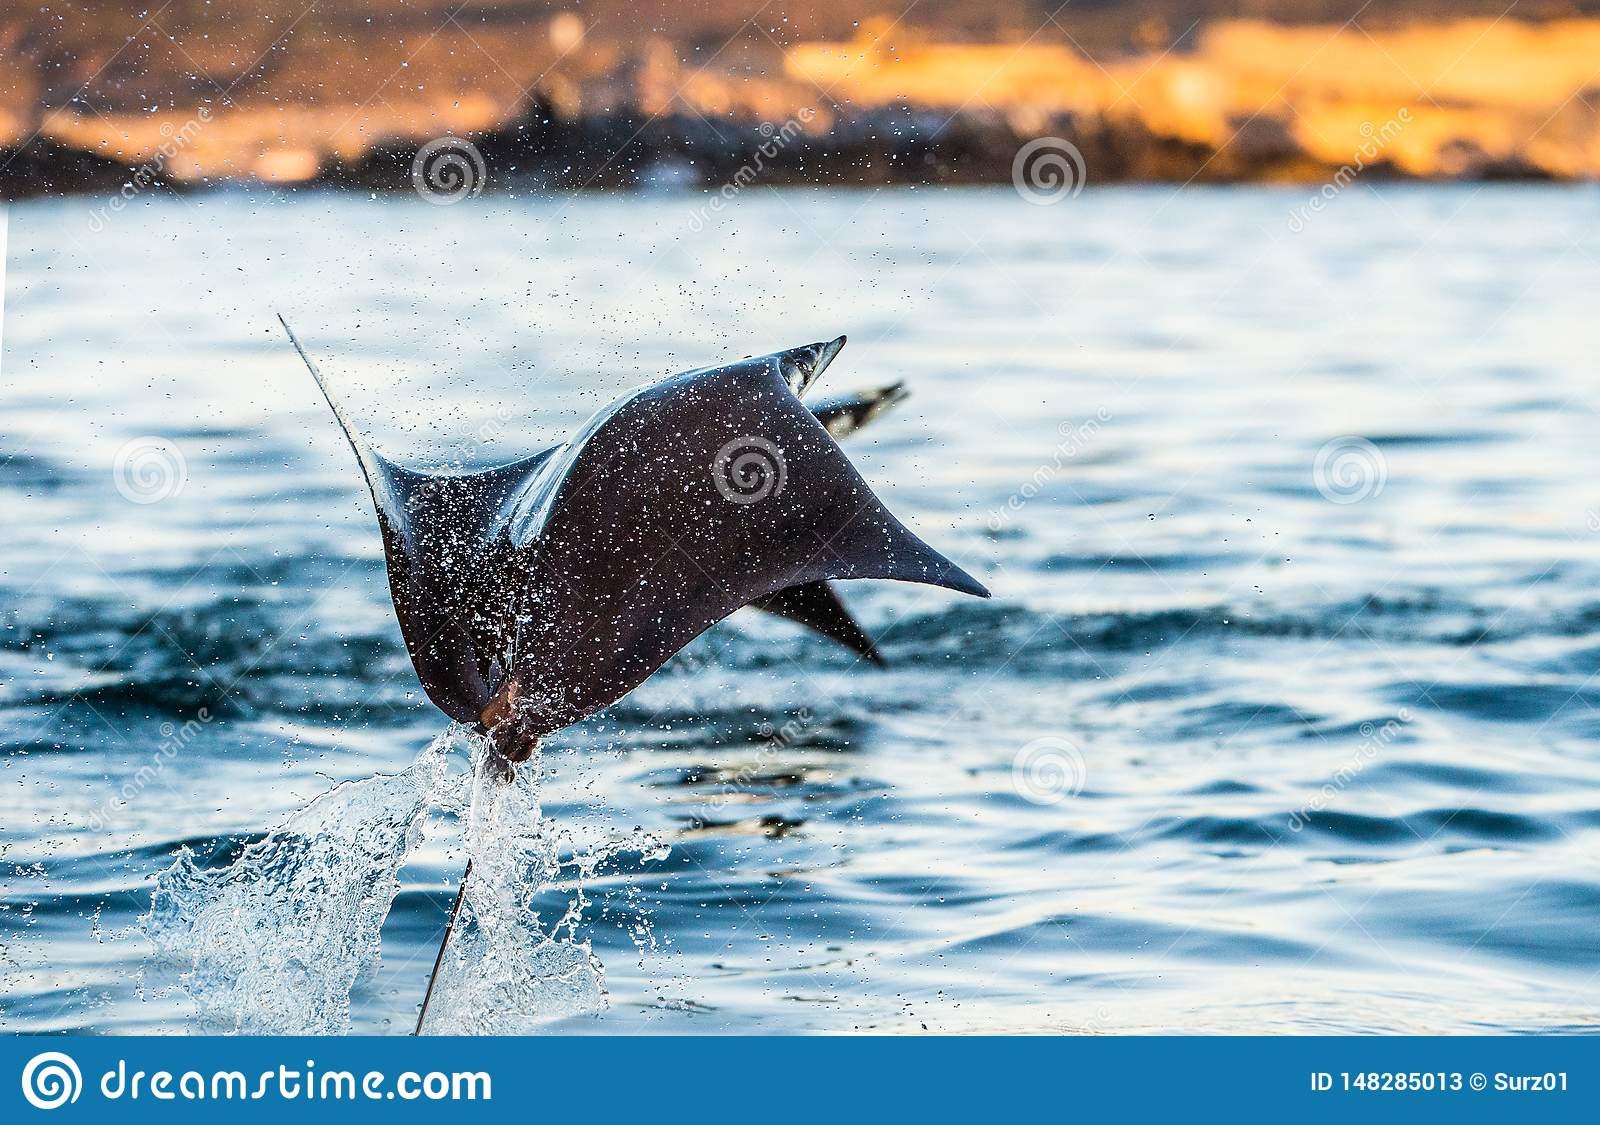 Mobula ray jumping out of the water.